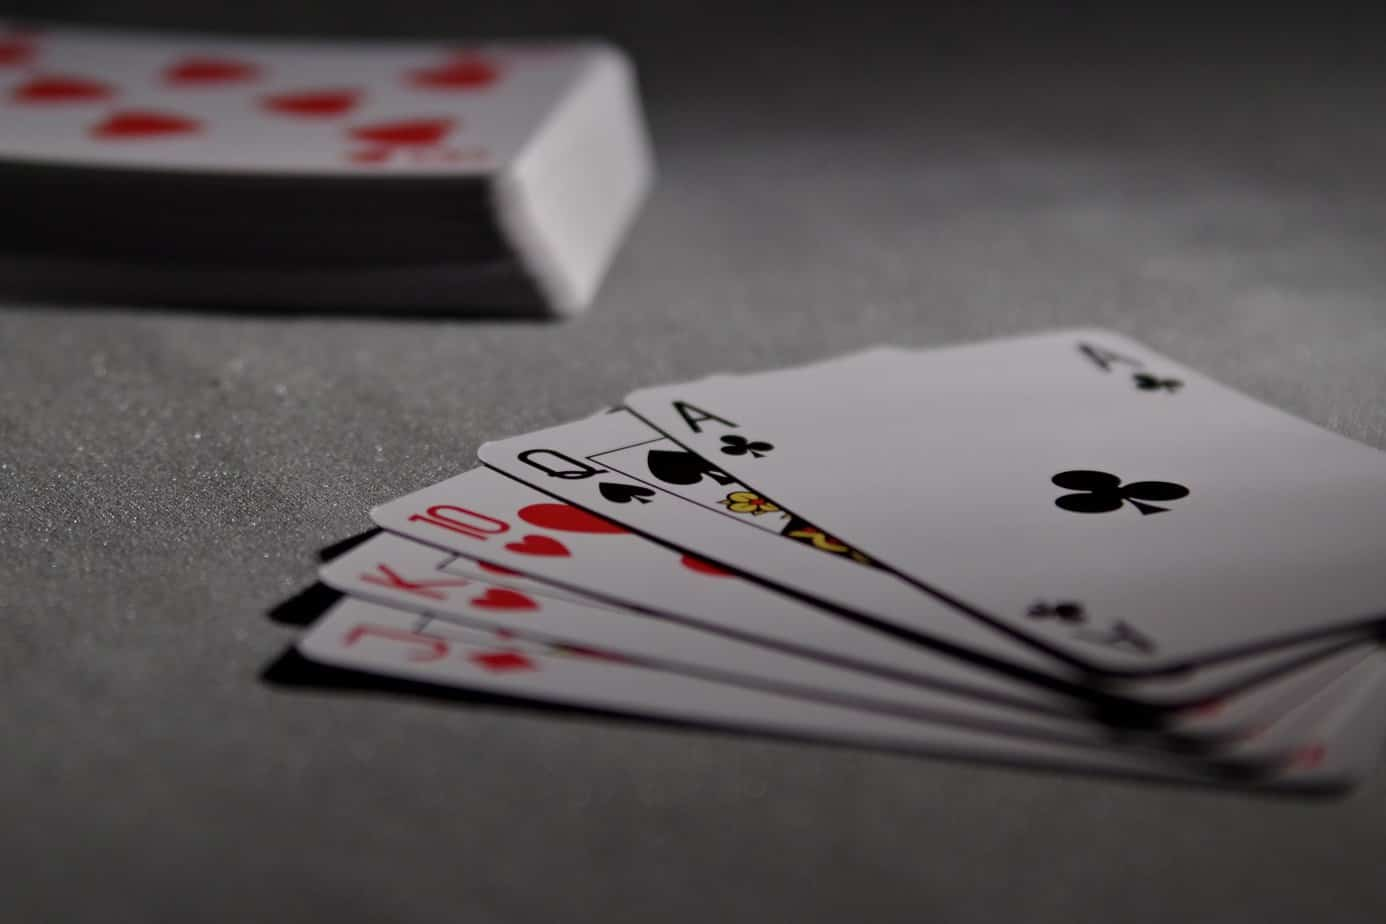 A royal flush in front of a deck of cards